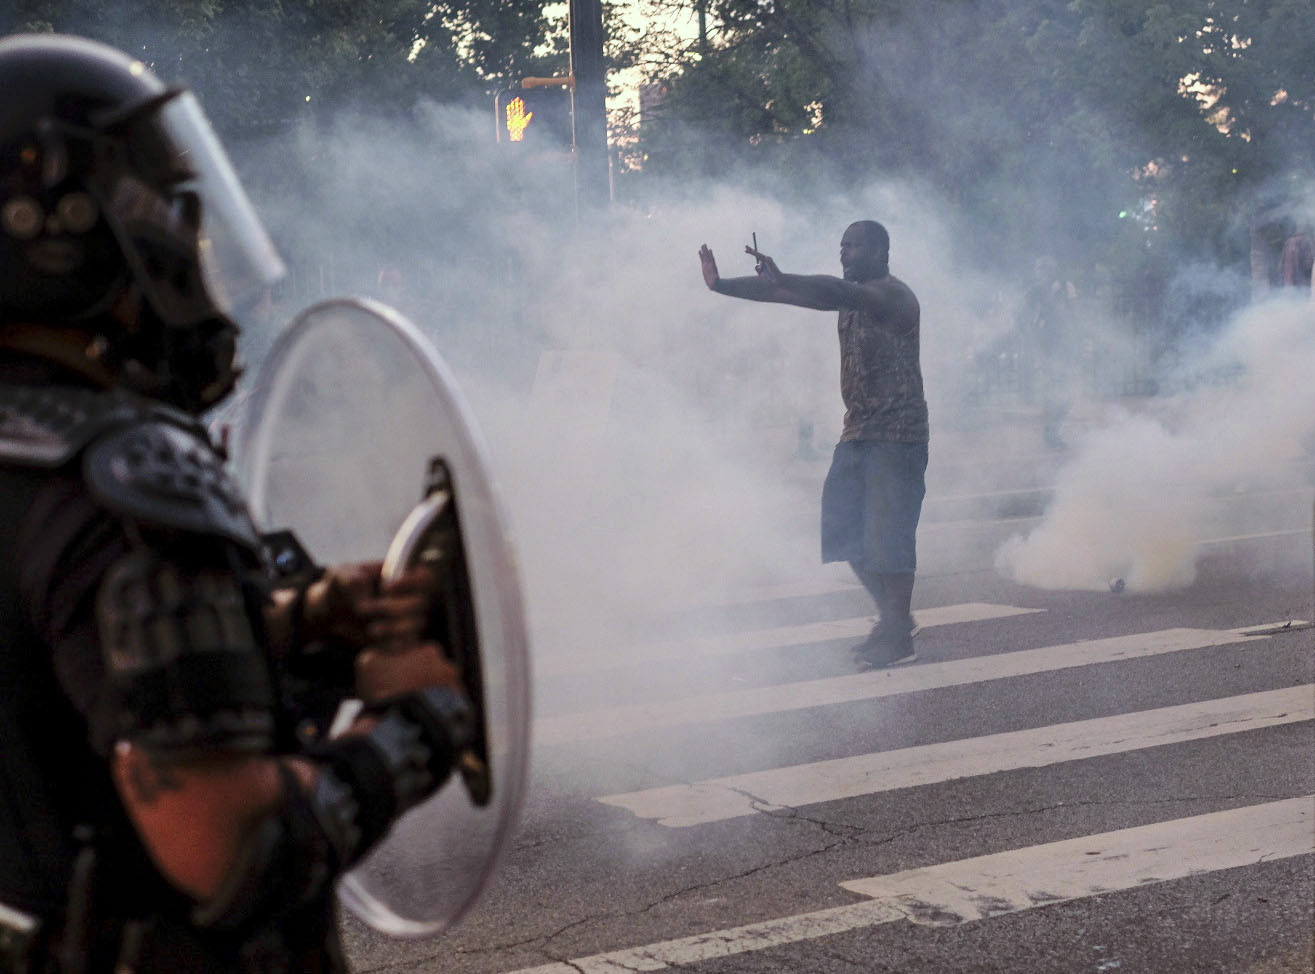 A protester tries to talk the police back amid tear gas in downtown Atlanta, Sunday, May 31, 2020. Protests continue across the country over the death of George Floyd, a black man who died after being restrained by Minneapolis police officers on May 25. (Ben Gray/Atlanta Journal-Constitution via AP)